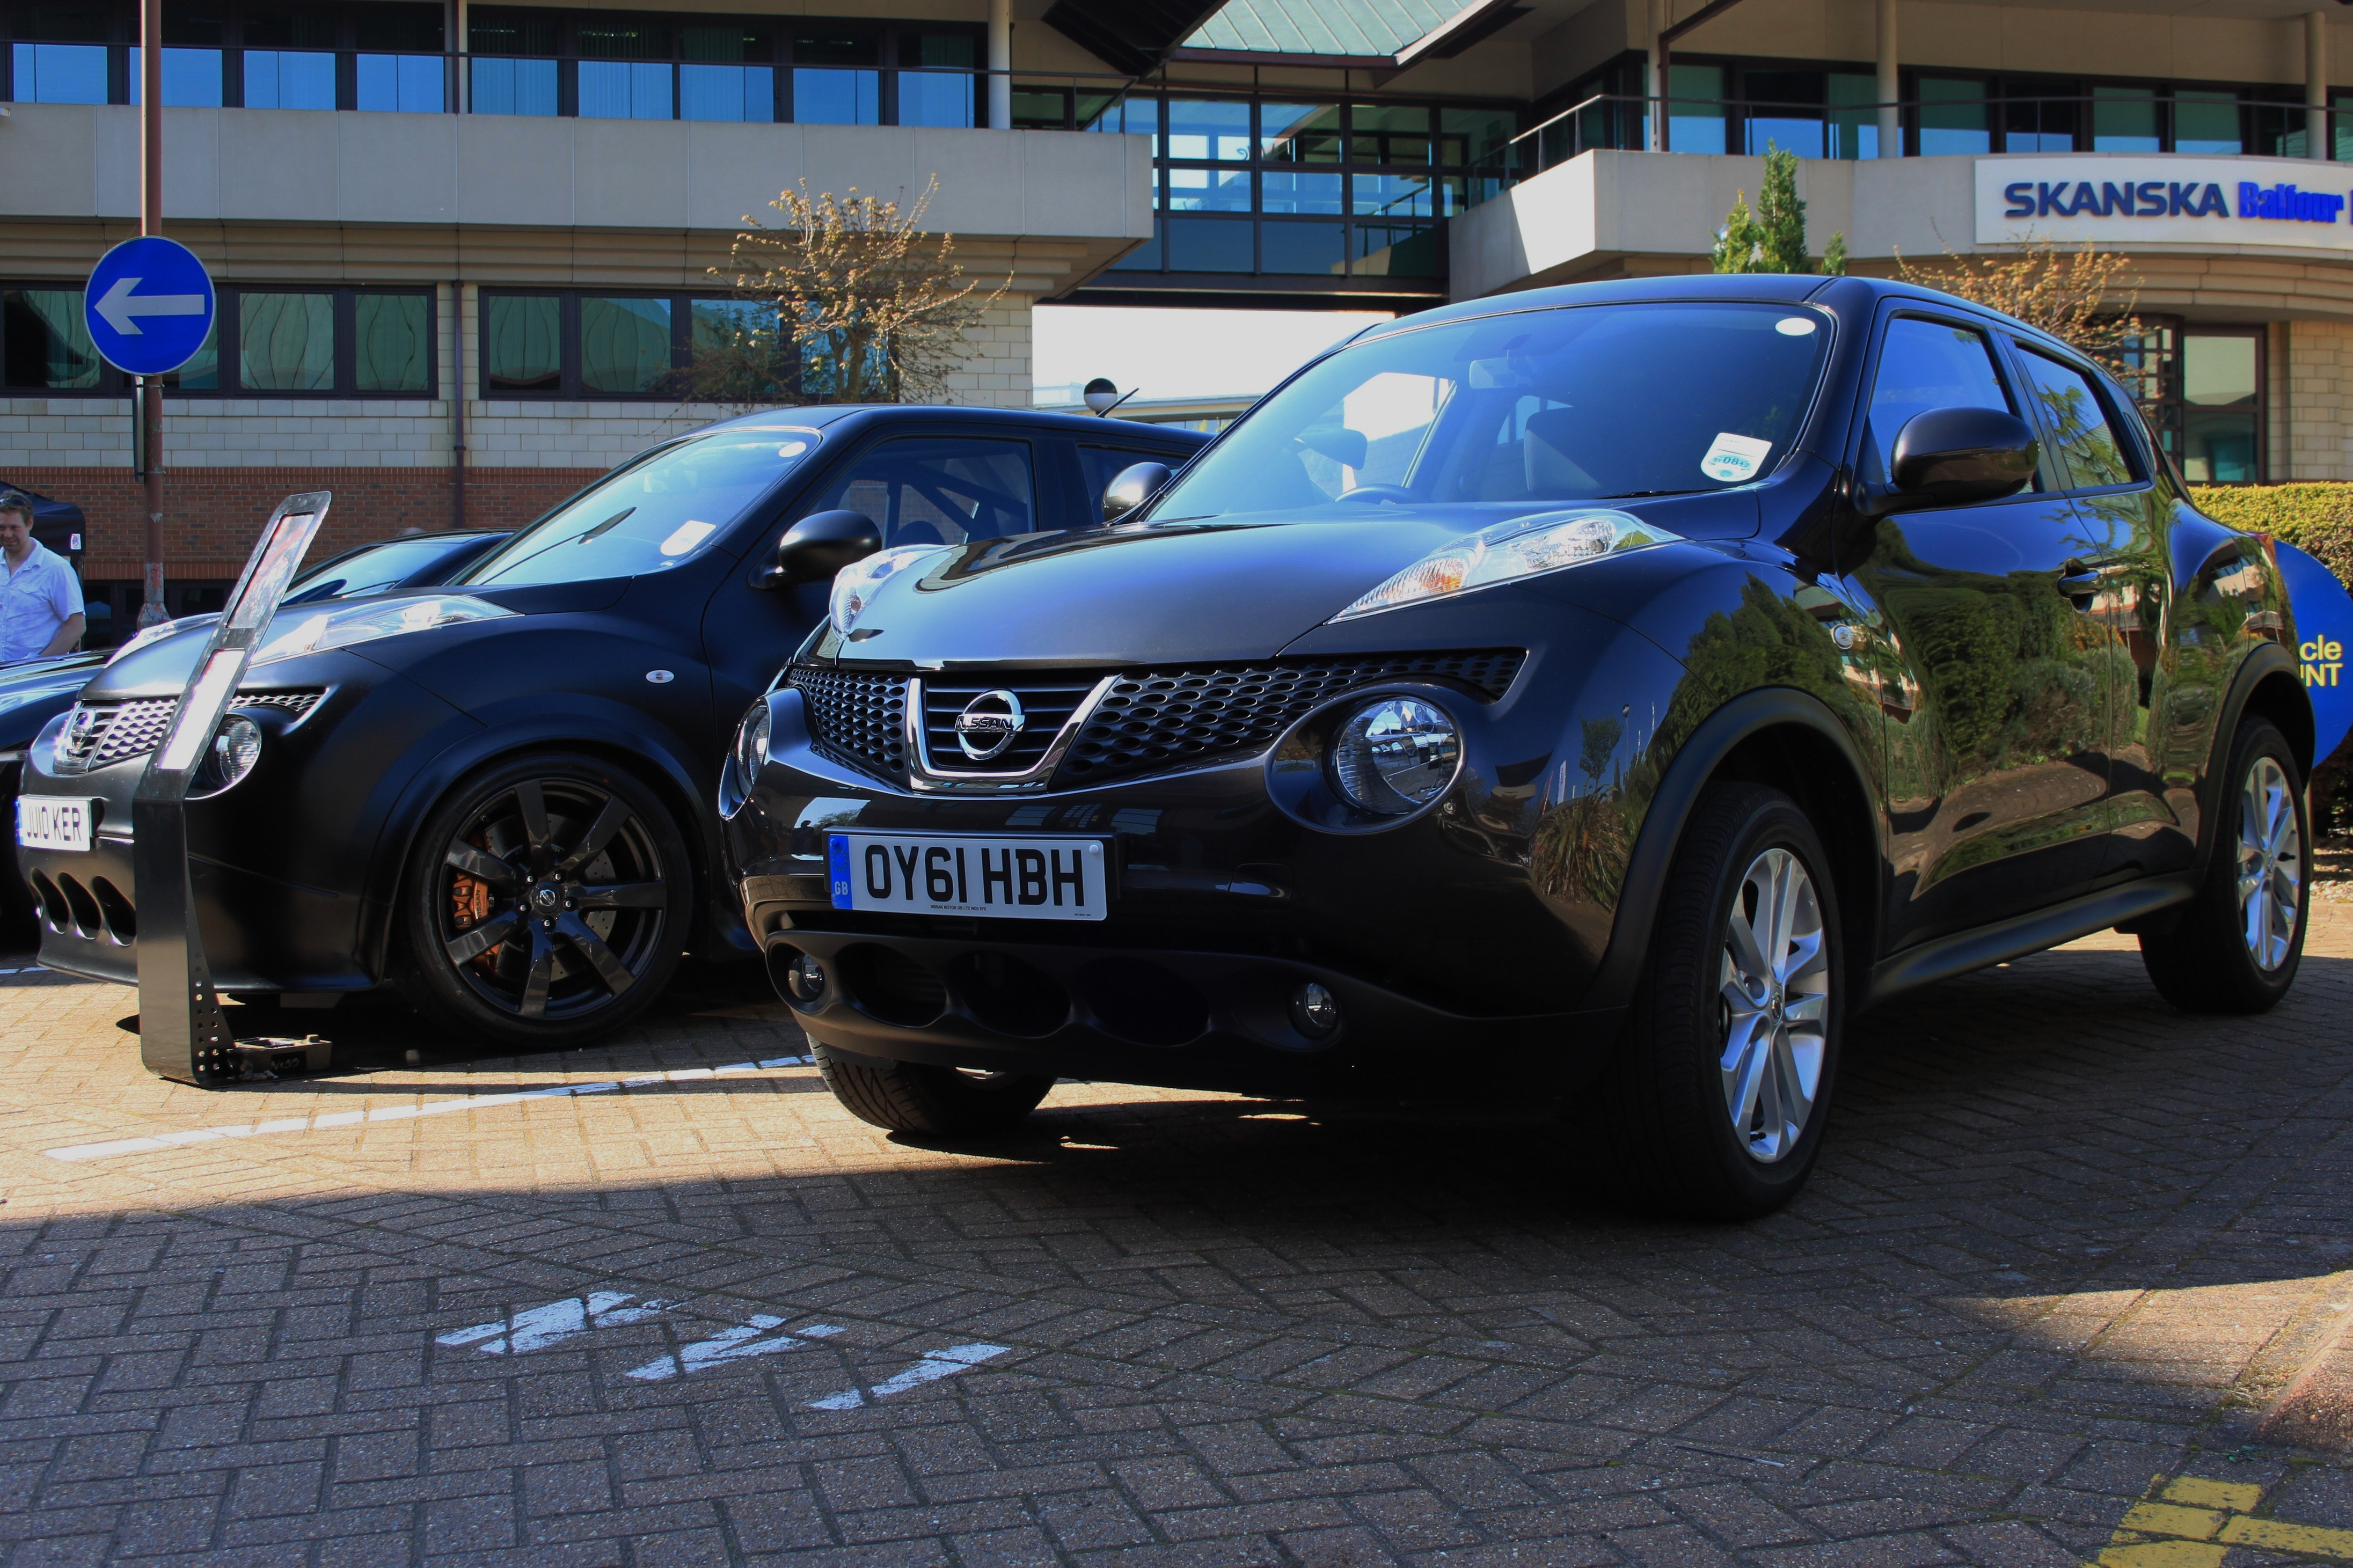 nissan juke r 2012 gtr comparison standard juke revival sports cars. Black Bedroom Furniture Sets. Home Design Ideas